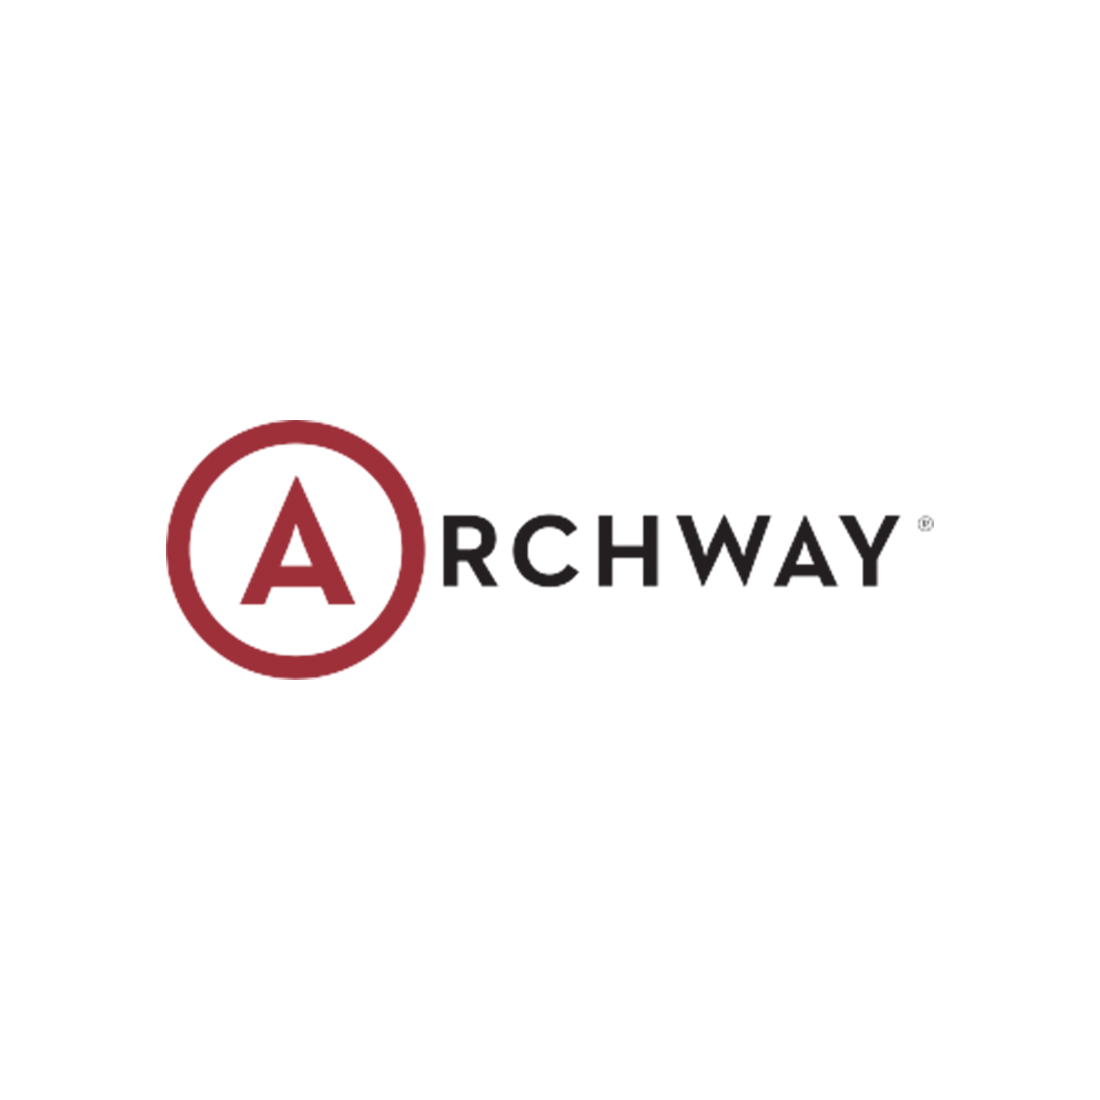 Archway Marketing Services